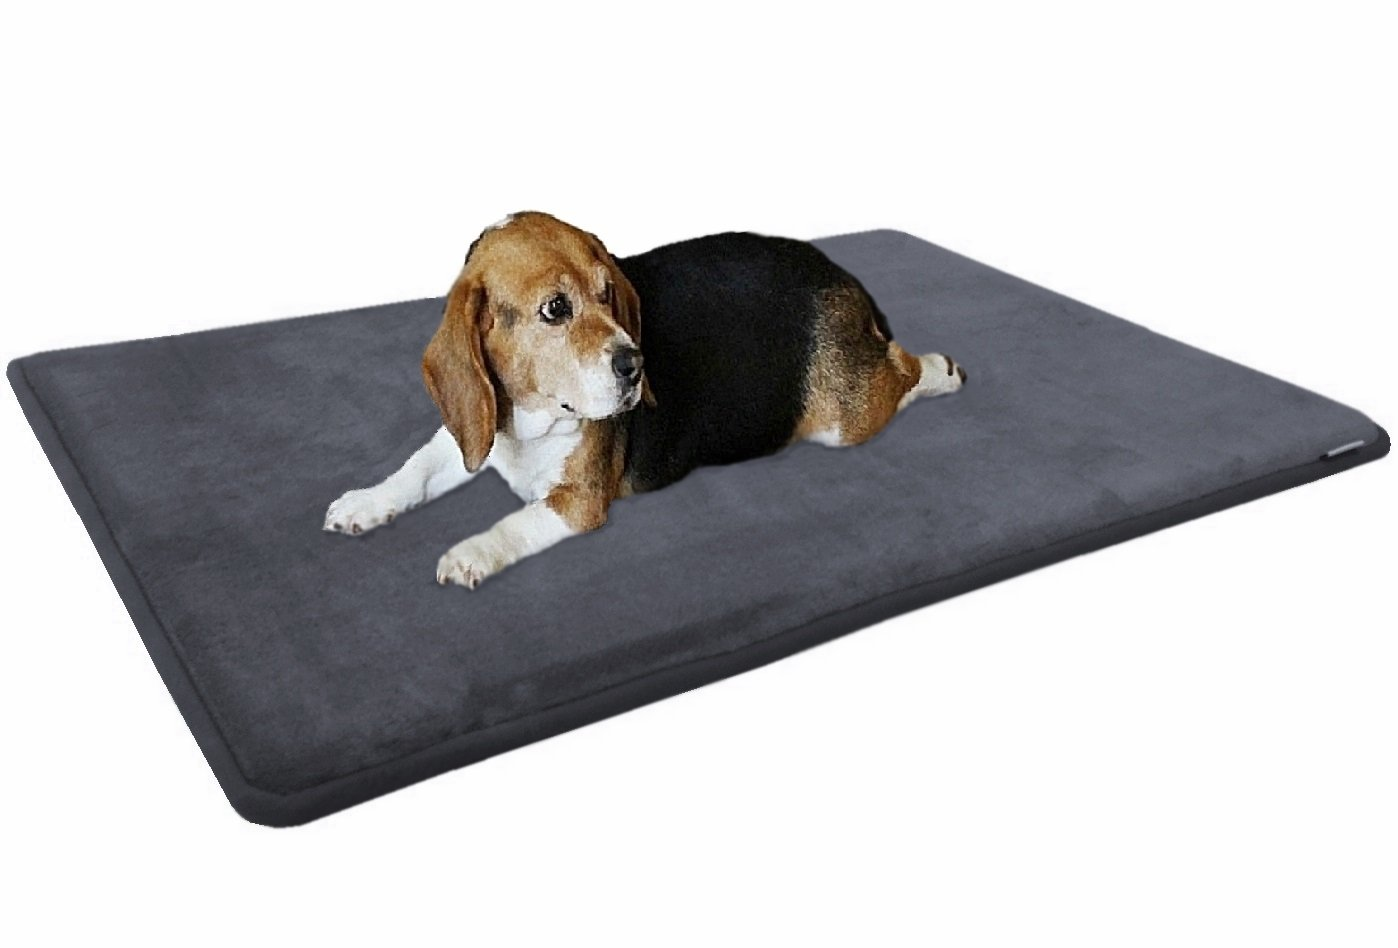 Dogbed4less Memory Foam Gel Infused Pet Dog Bed Mat for Large Dogs with Waterproof Anti Slip Bottom - Fit XXL Large 54''X37'' Crate, Gray by Dogbed4less